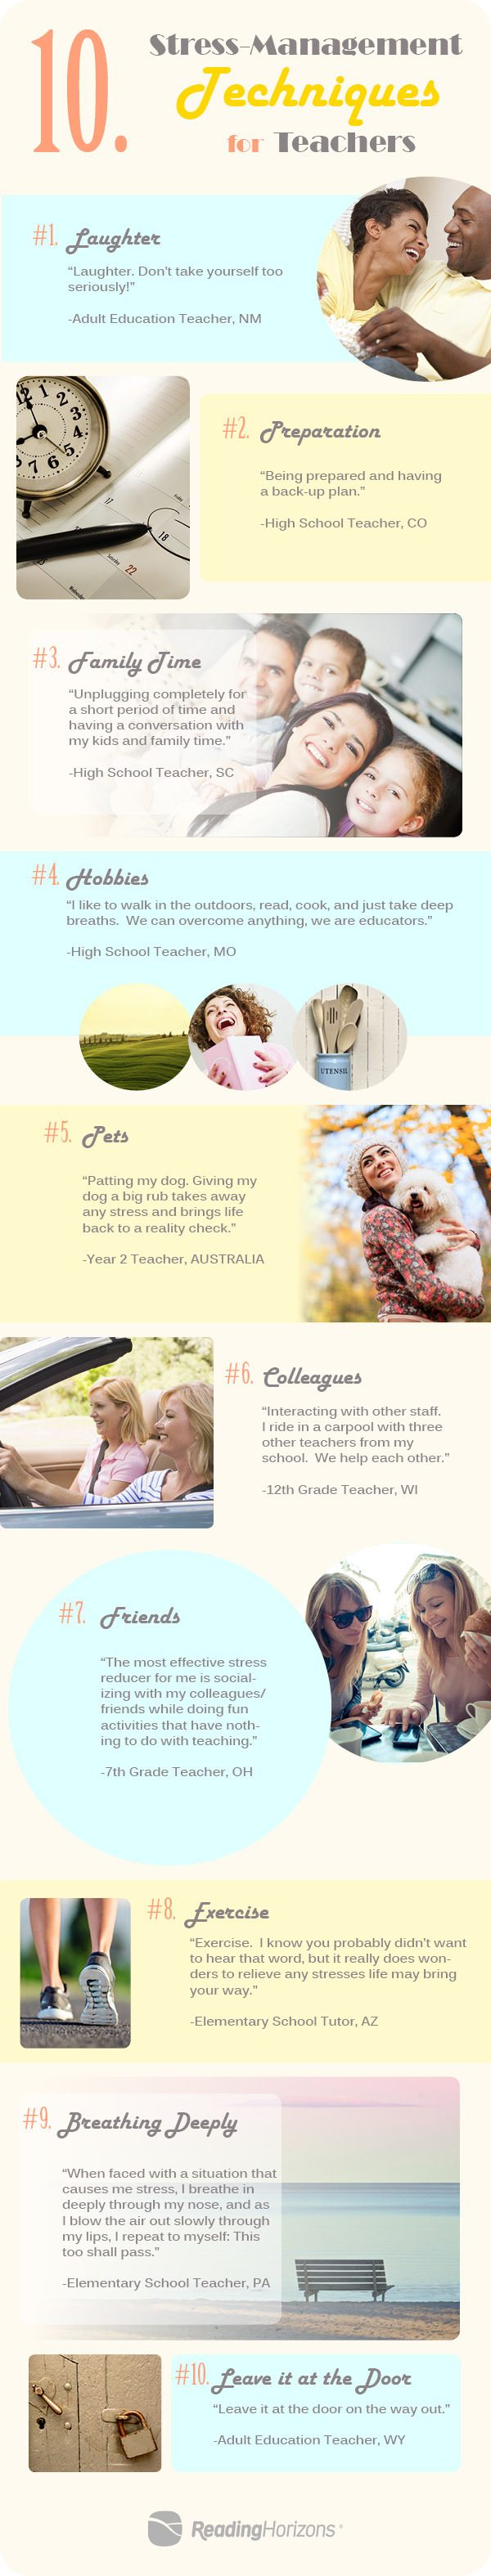 stress management strategies for teachers and students  10 stress management techniques for teachers infographic